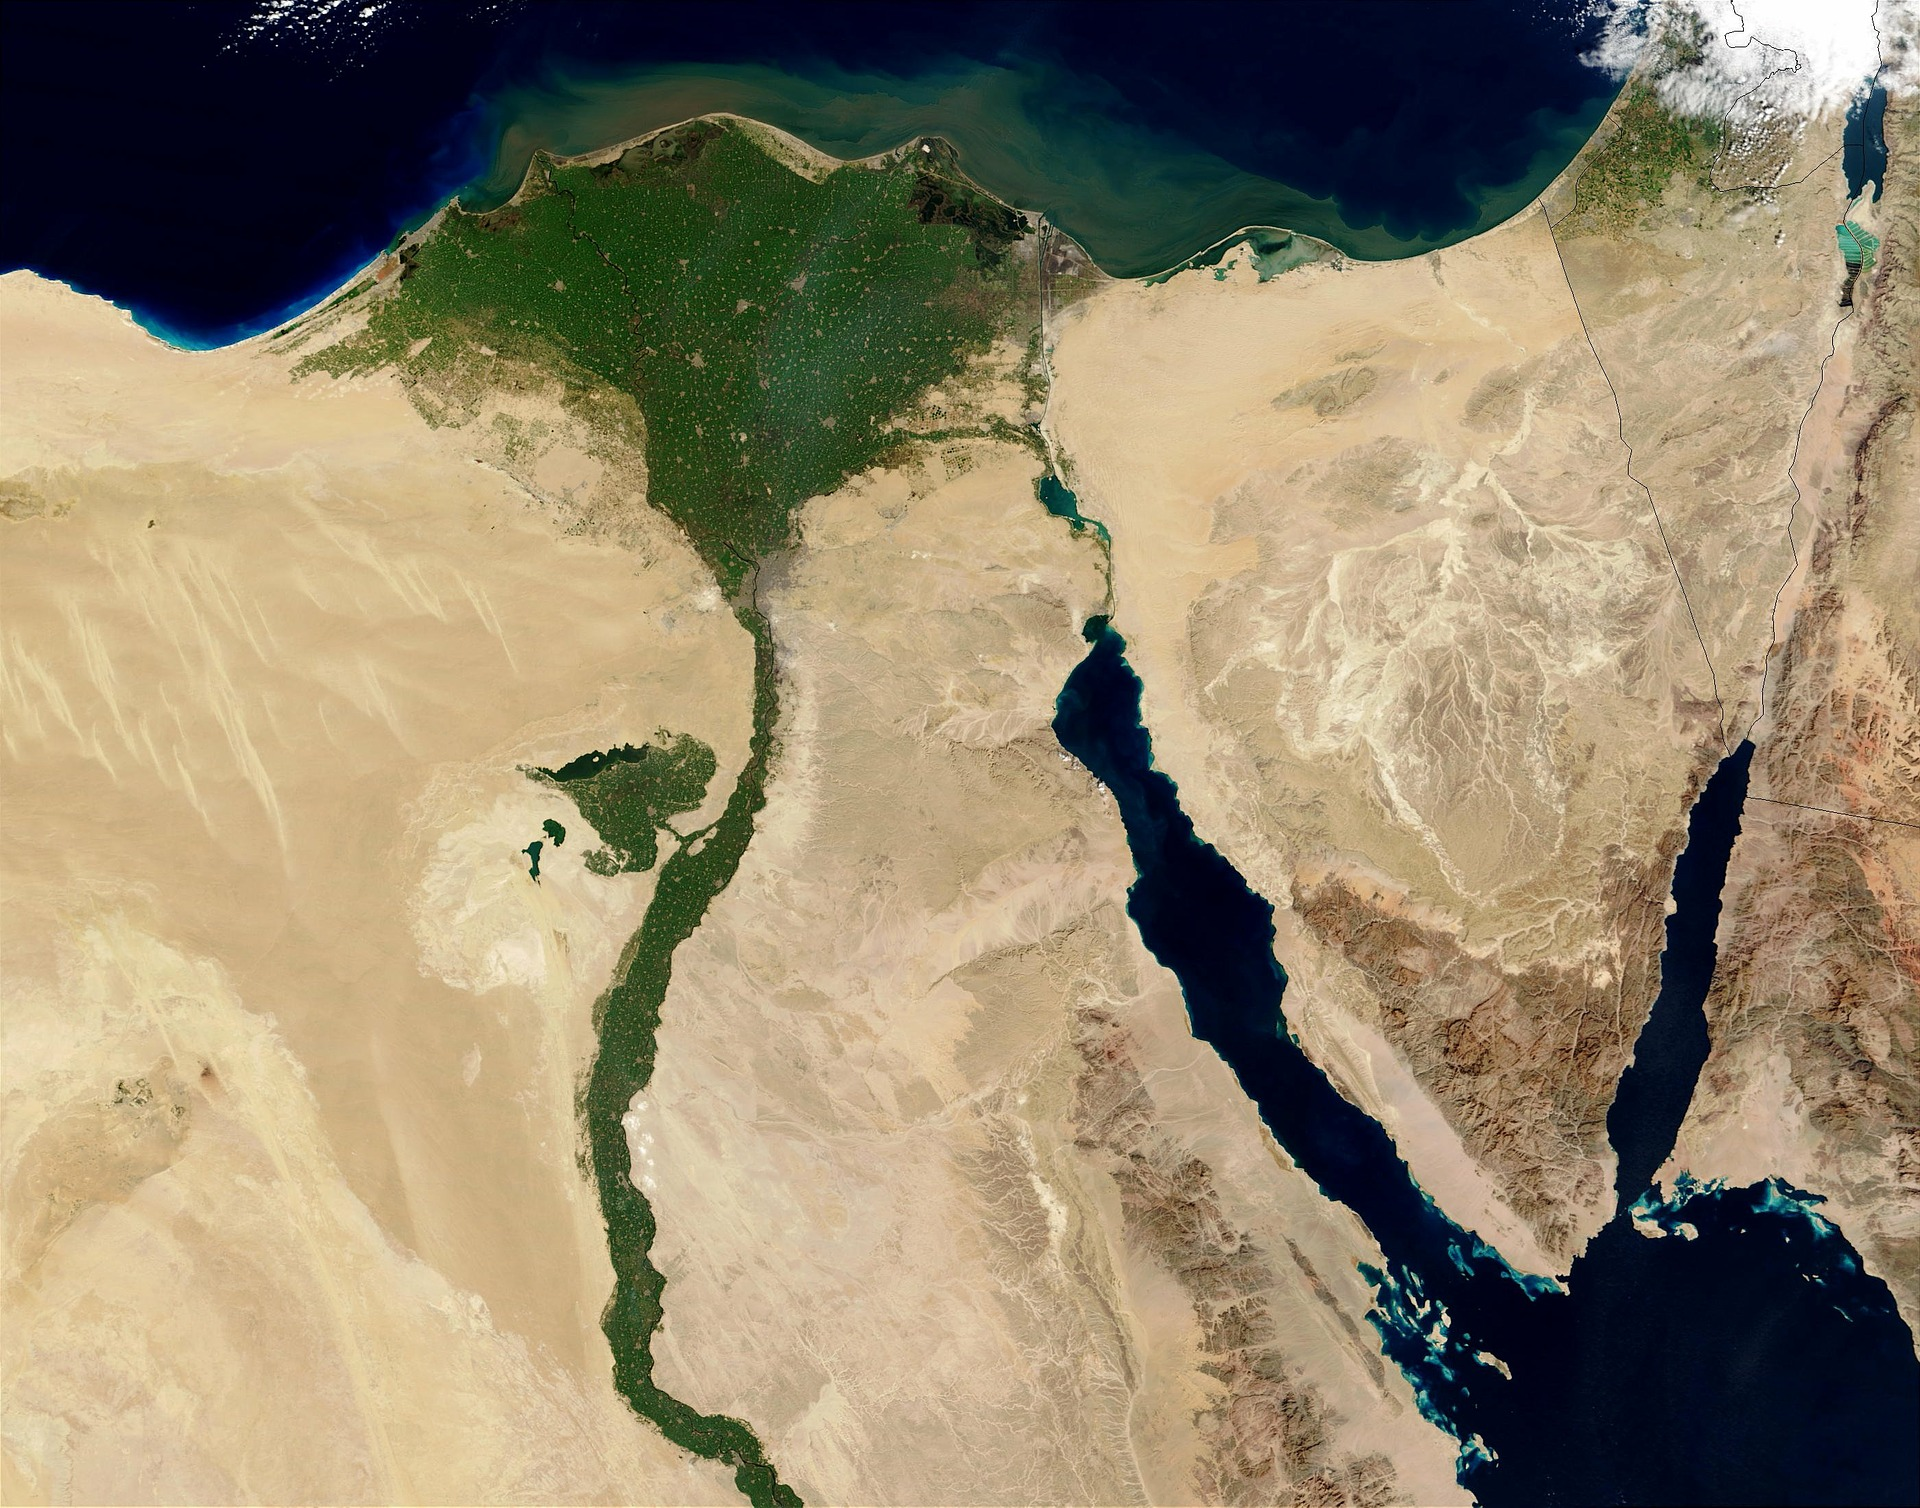 Sudan Sees Worst Nile Flooding in Over a Century